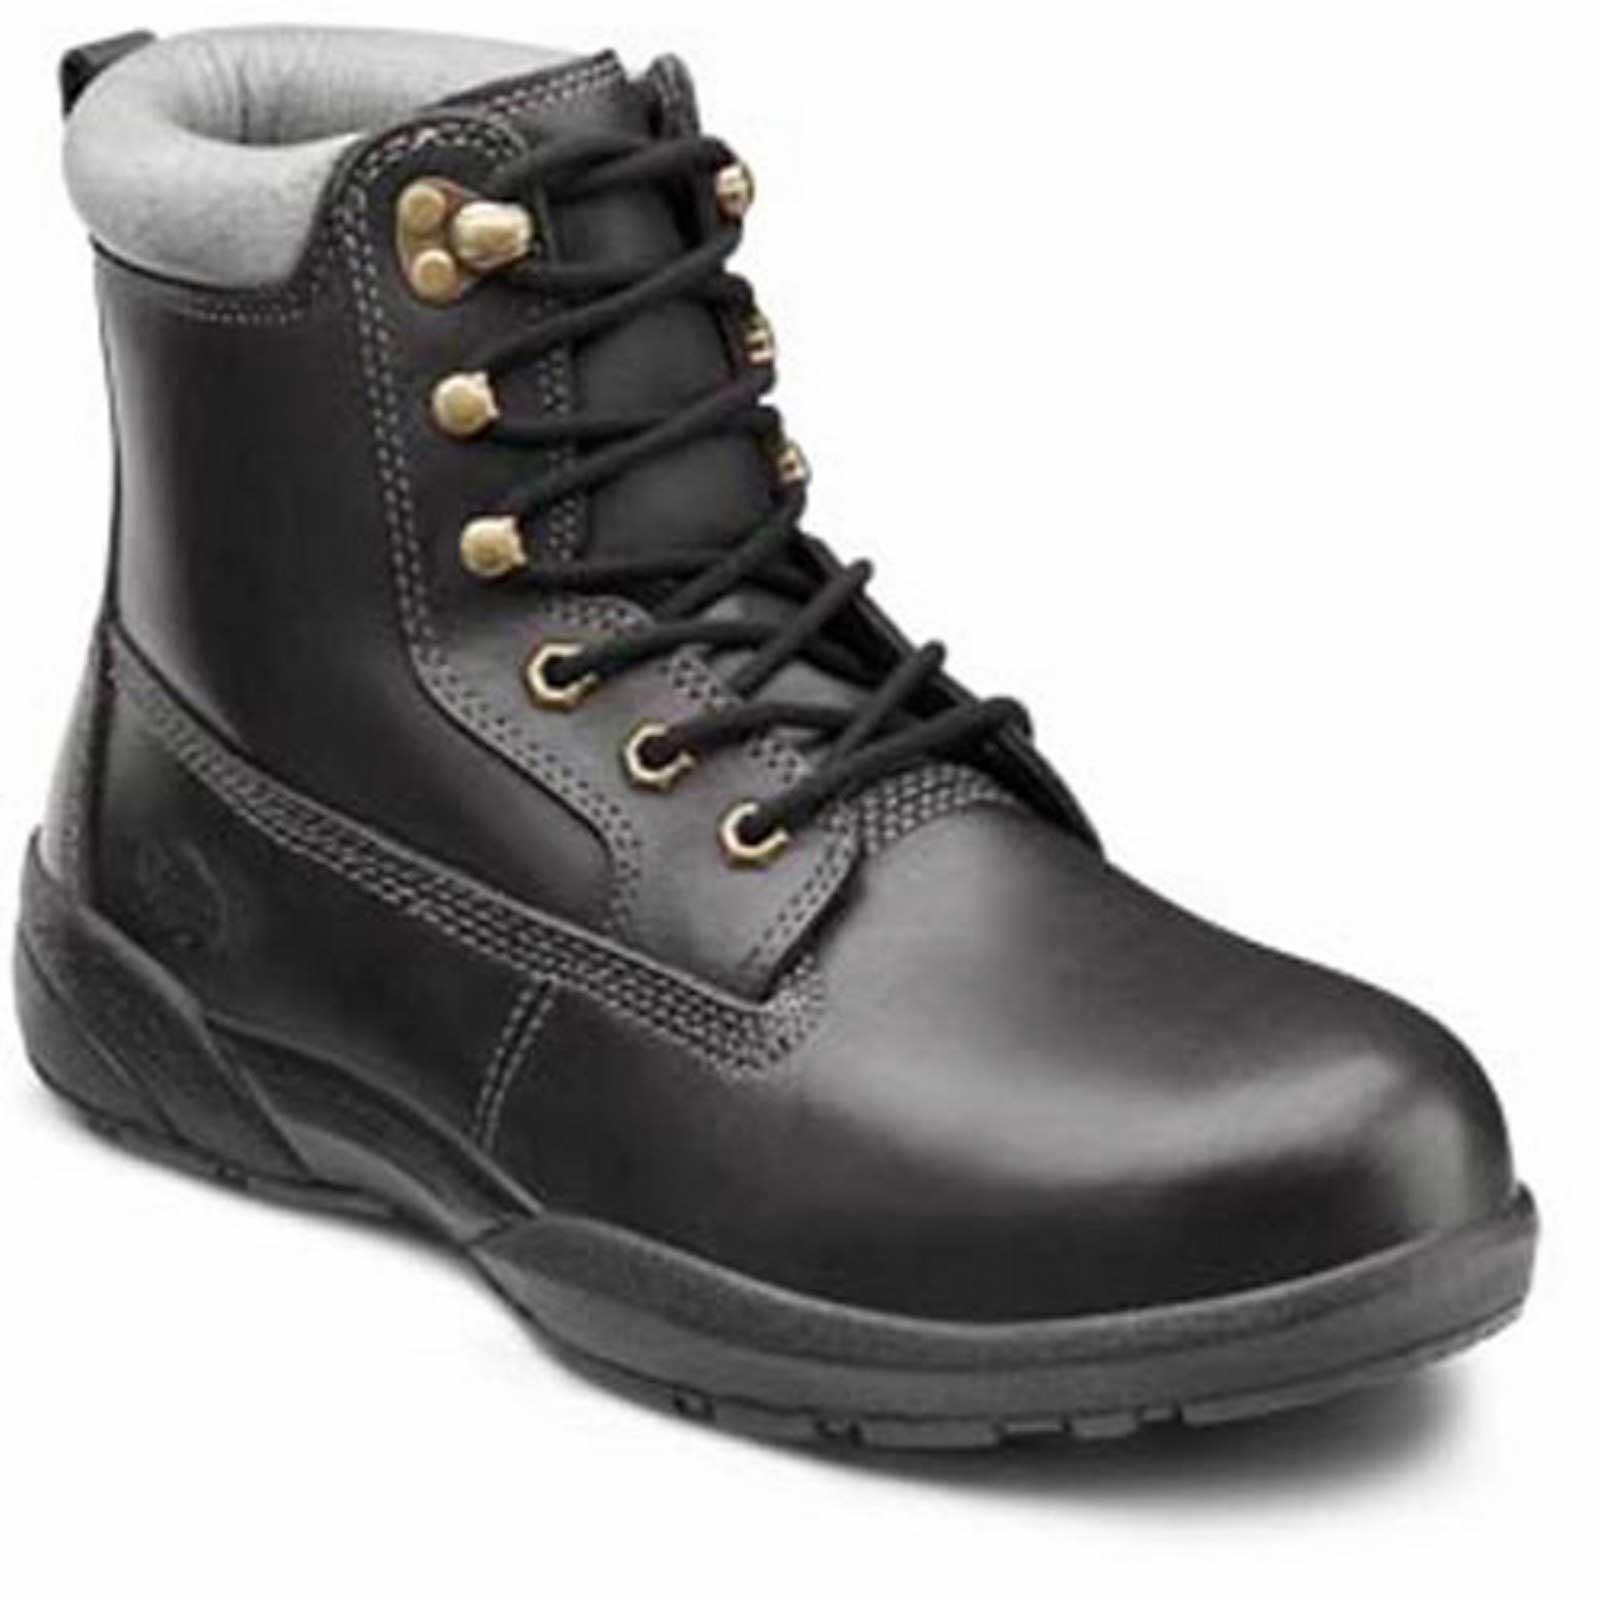 Dr. Comfort - Protector - Moderate Boot